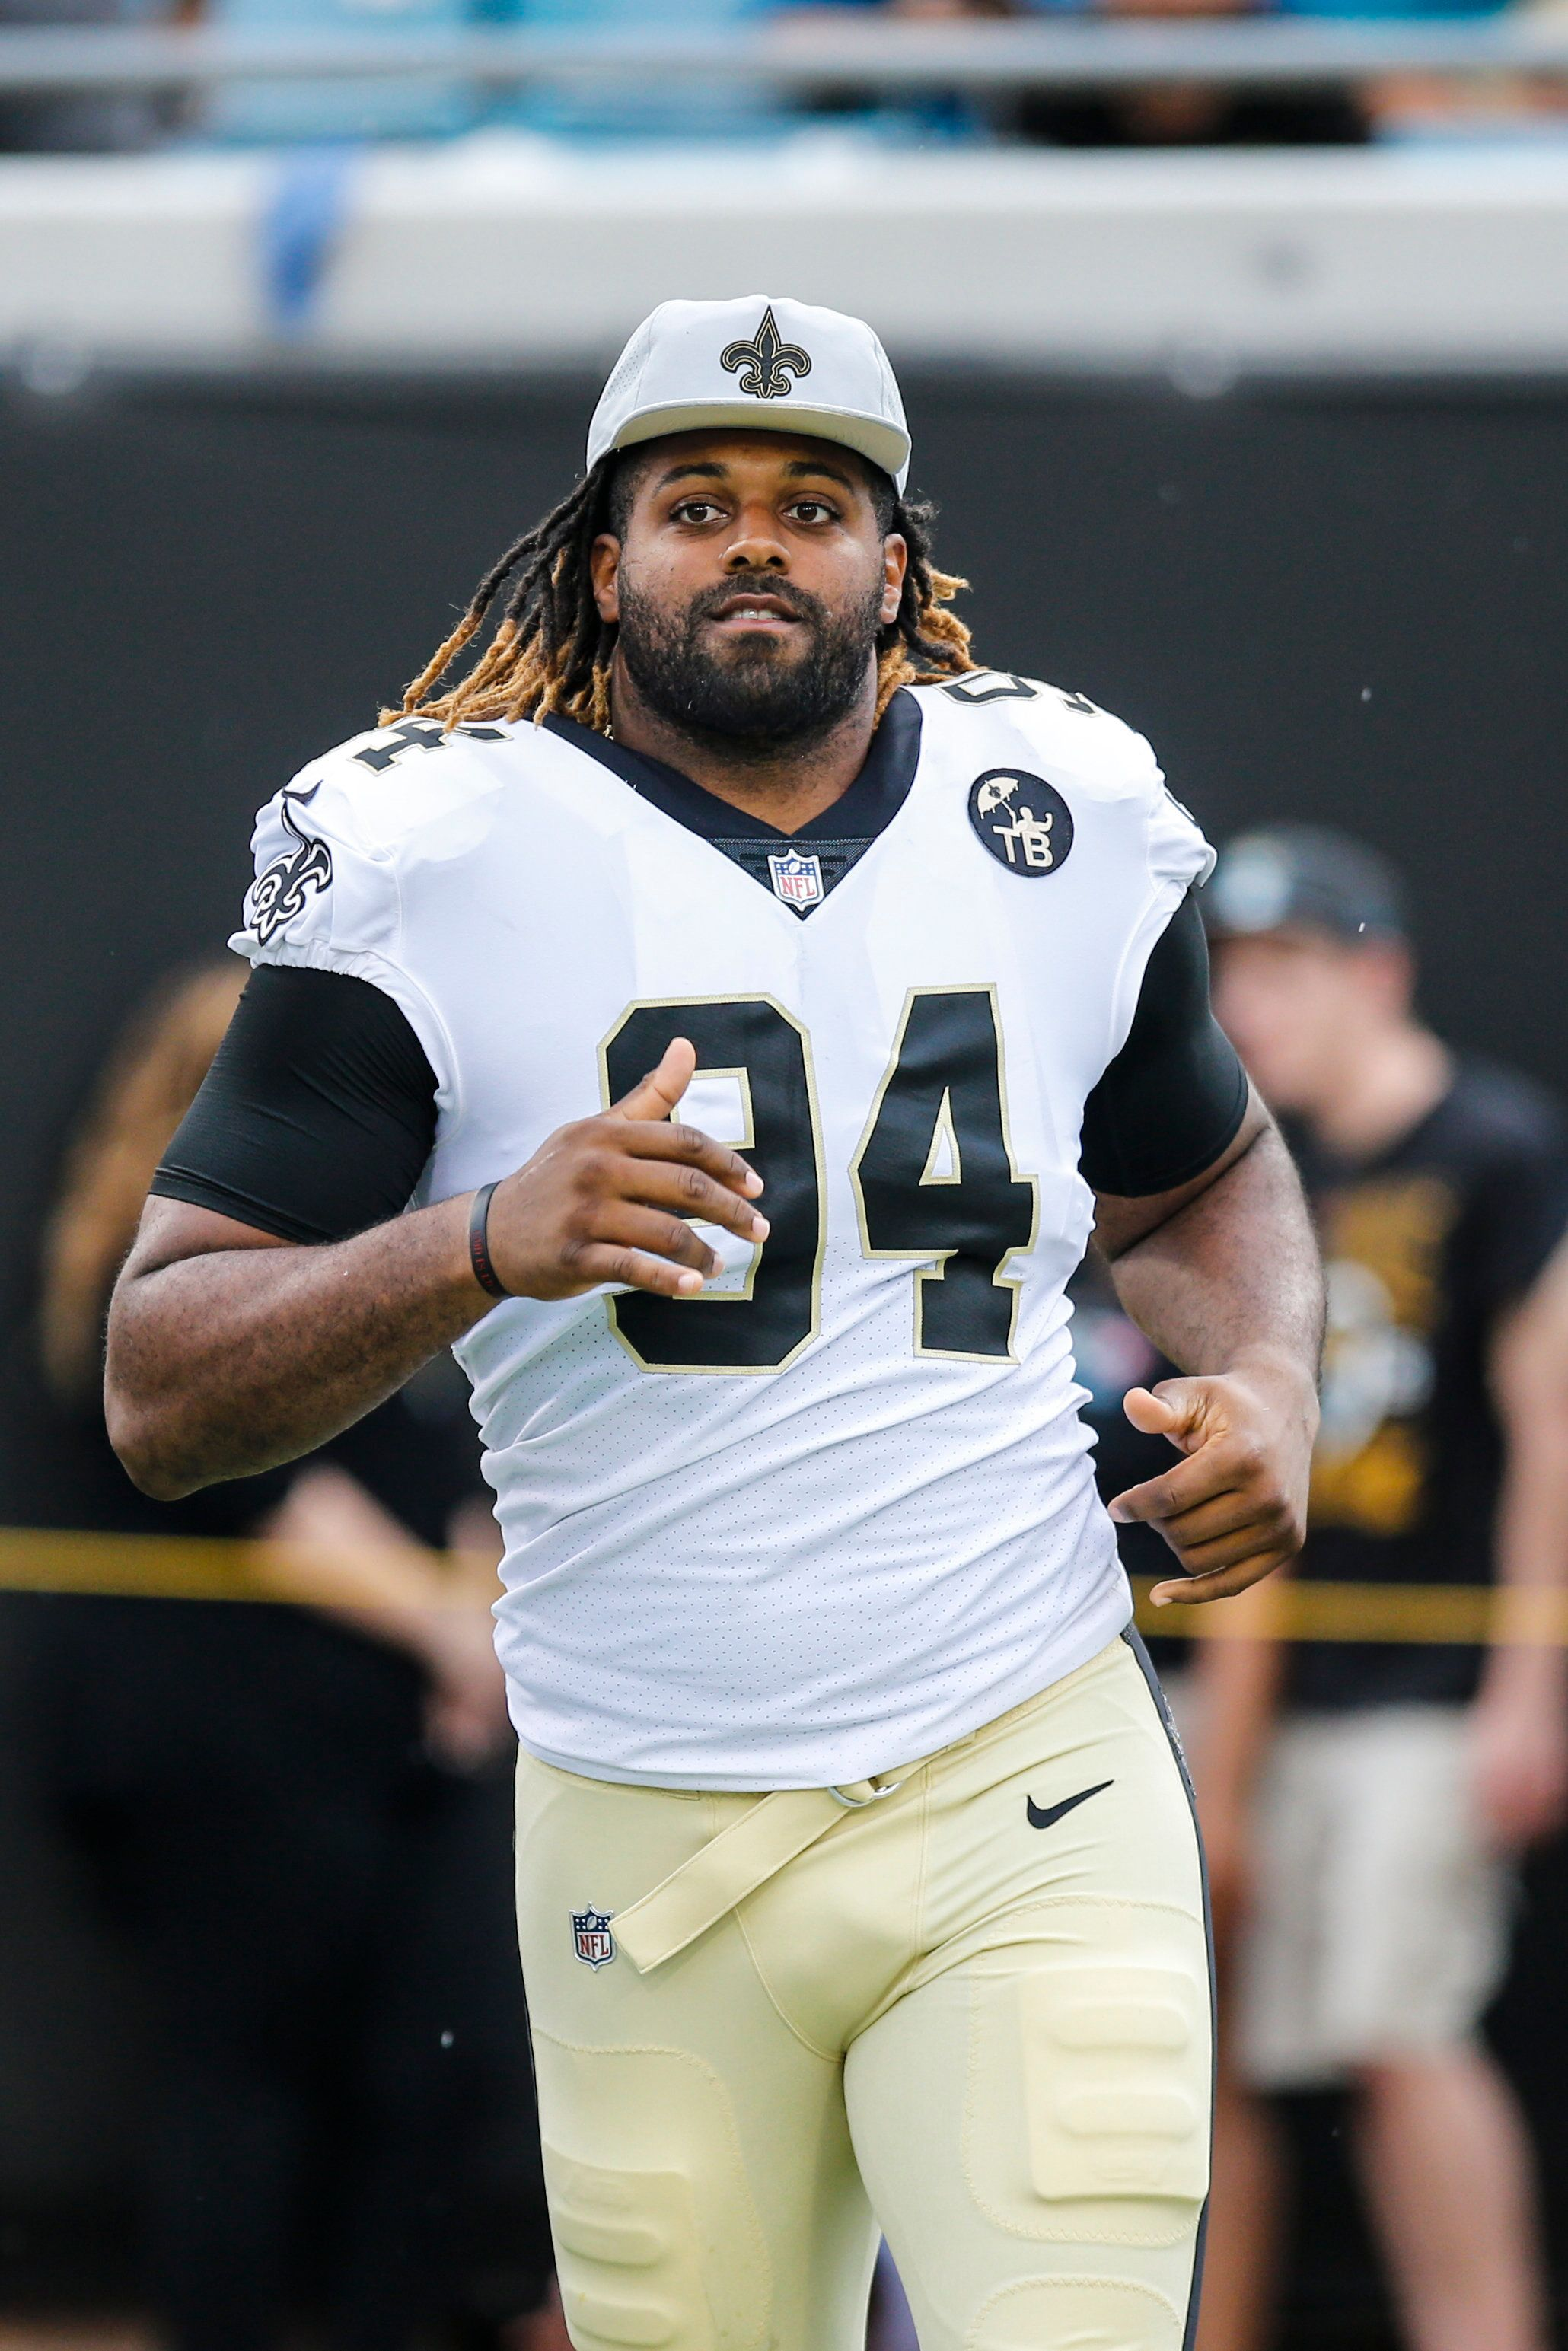 JACKSONVILLE, FL - AUGUST 09: New Orleans Saints defensive end Cameron Jordan (94) runs out on the field during the game between the New Orleans Saints and the Jacksonville Jaguars on August 9, 2018 at TIAA Bank Field in Jacksonville, Fl. (Photo by David Rosenblum/Icon Sportswire via Getty Images)